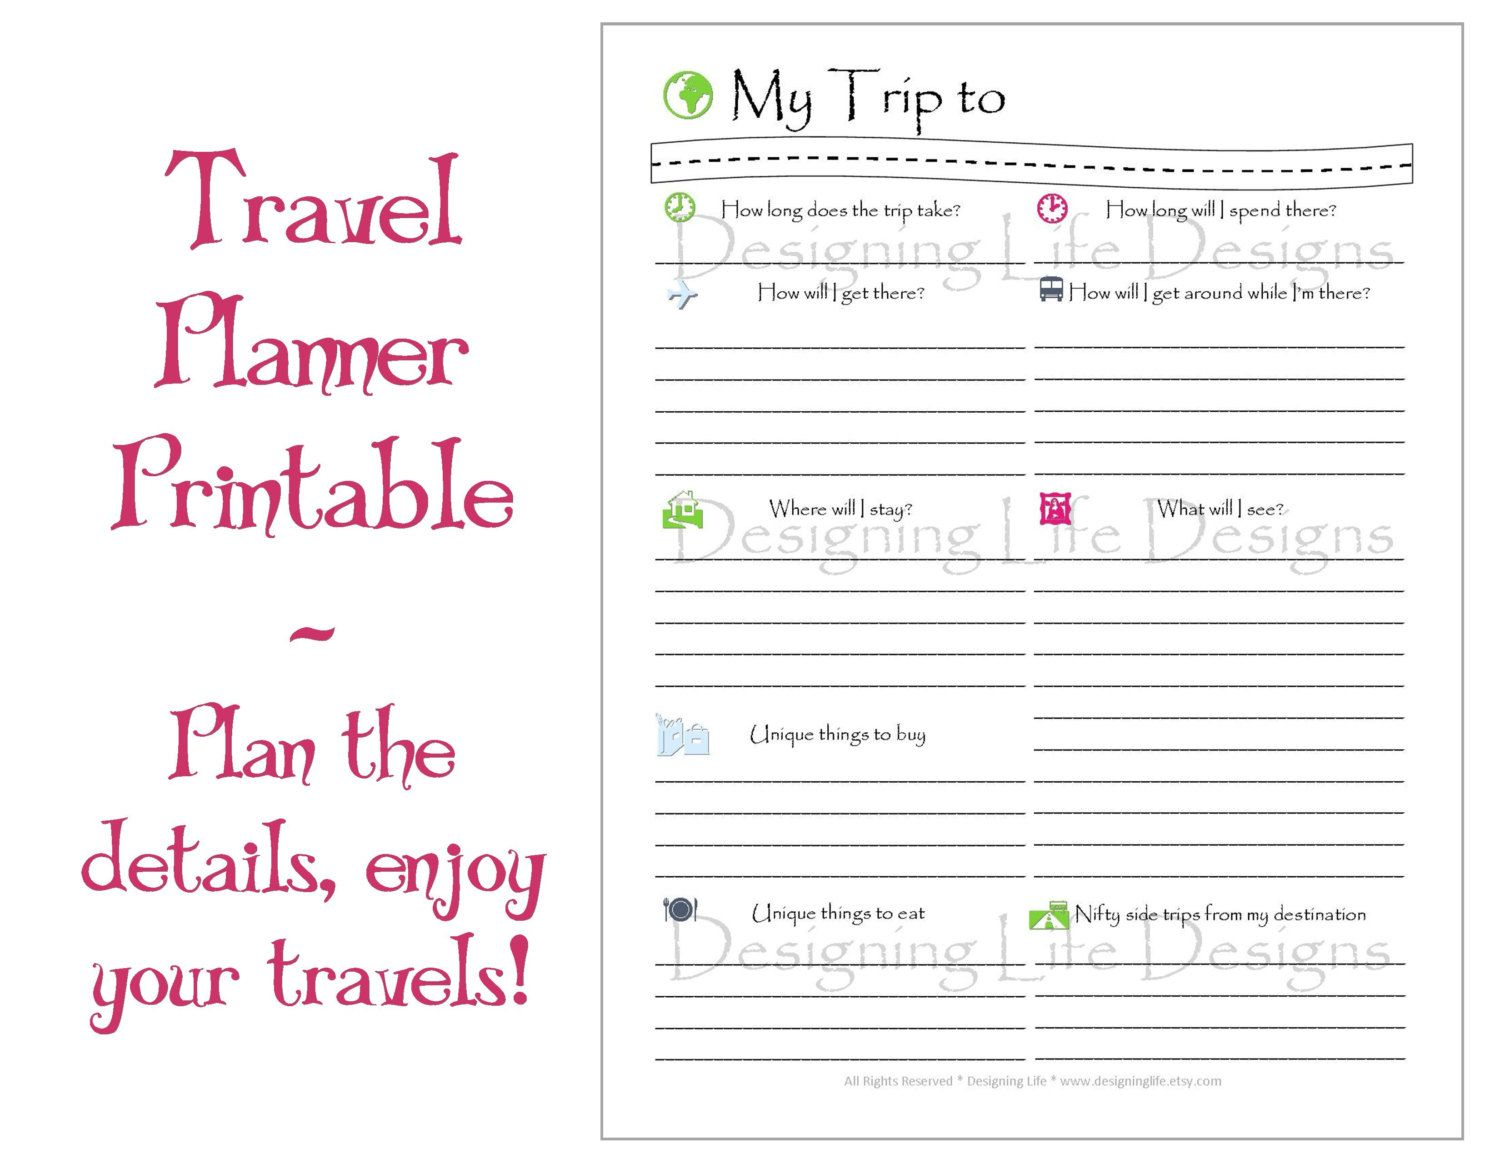 Vacation Travel Planner Printable PDF Sheets My Di DesigningLife